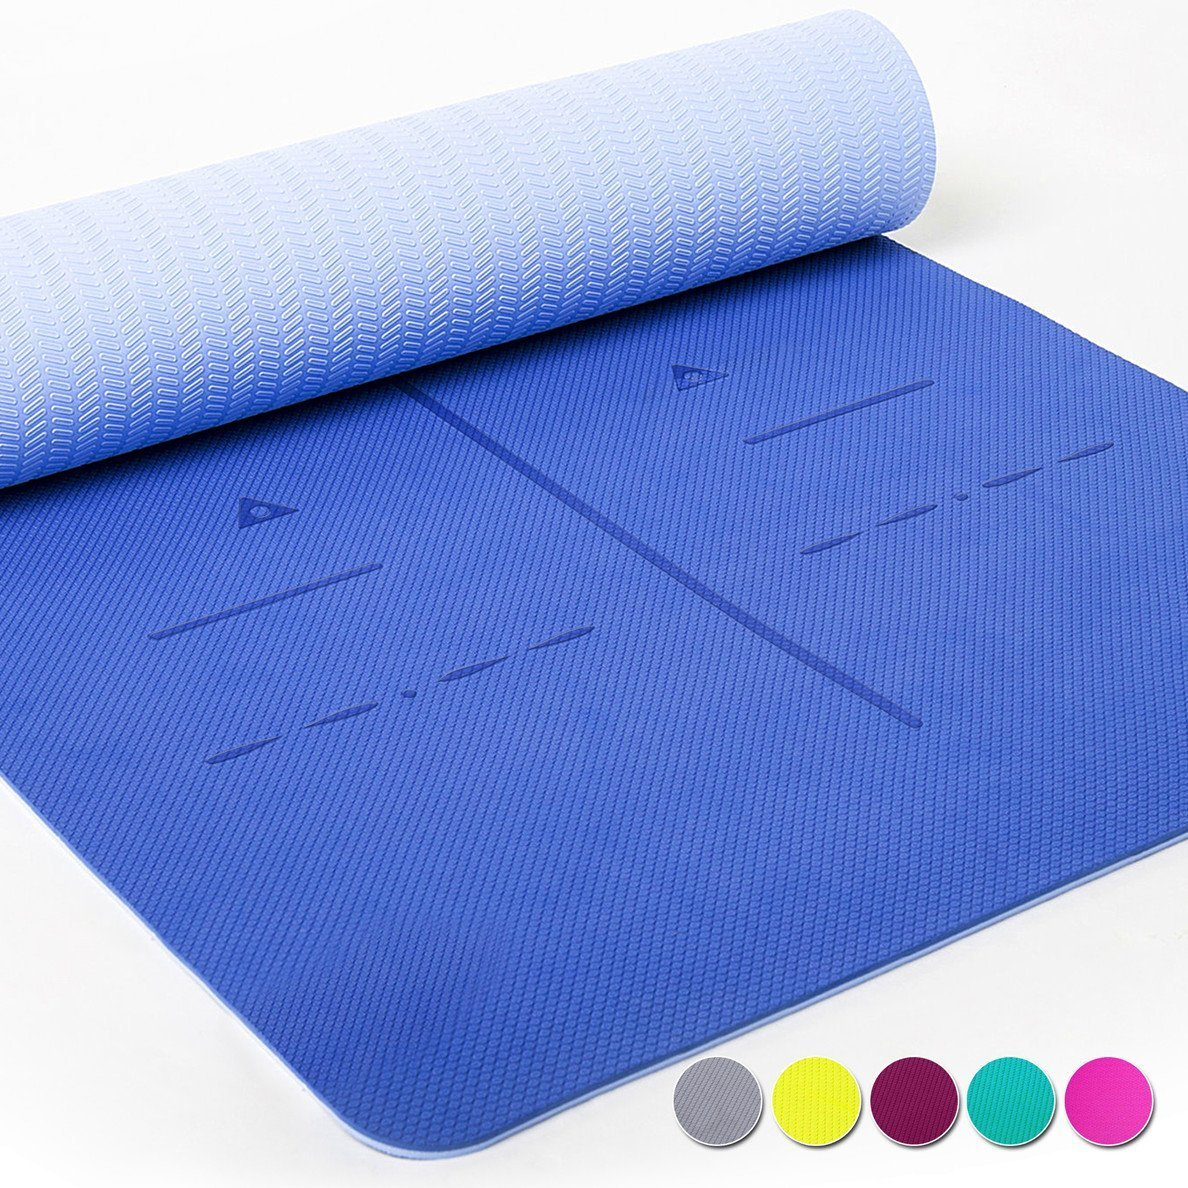 Heathyoga Eco Friendly 6mm Thick SGS Certified, TPE Textured, Non-Slip Extra Large Yoga Mat with Carry Strap, 183 cm x 65 cm Thickness 6mm (Dark Purple)